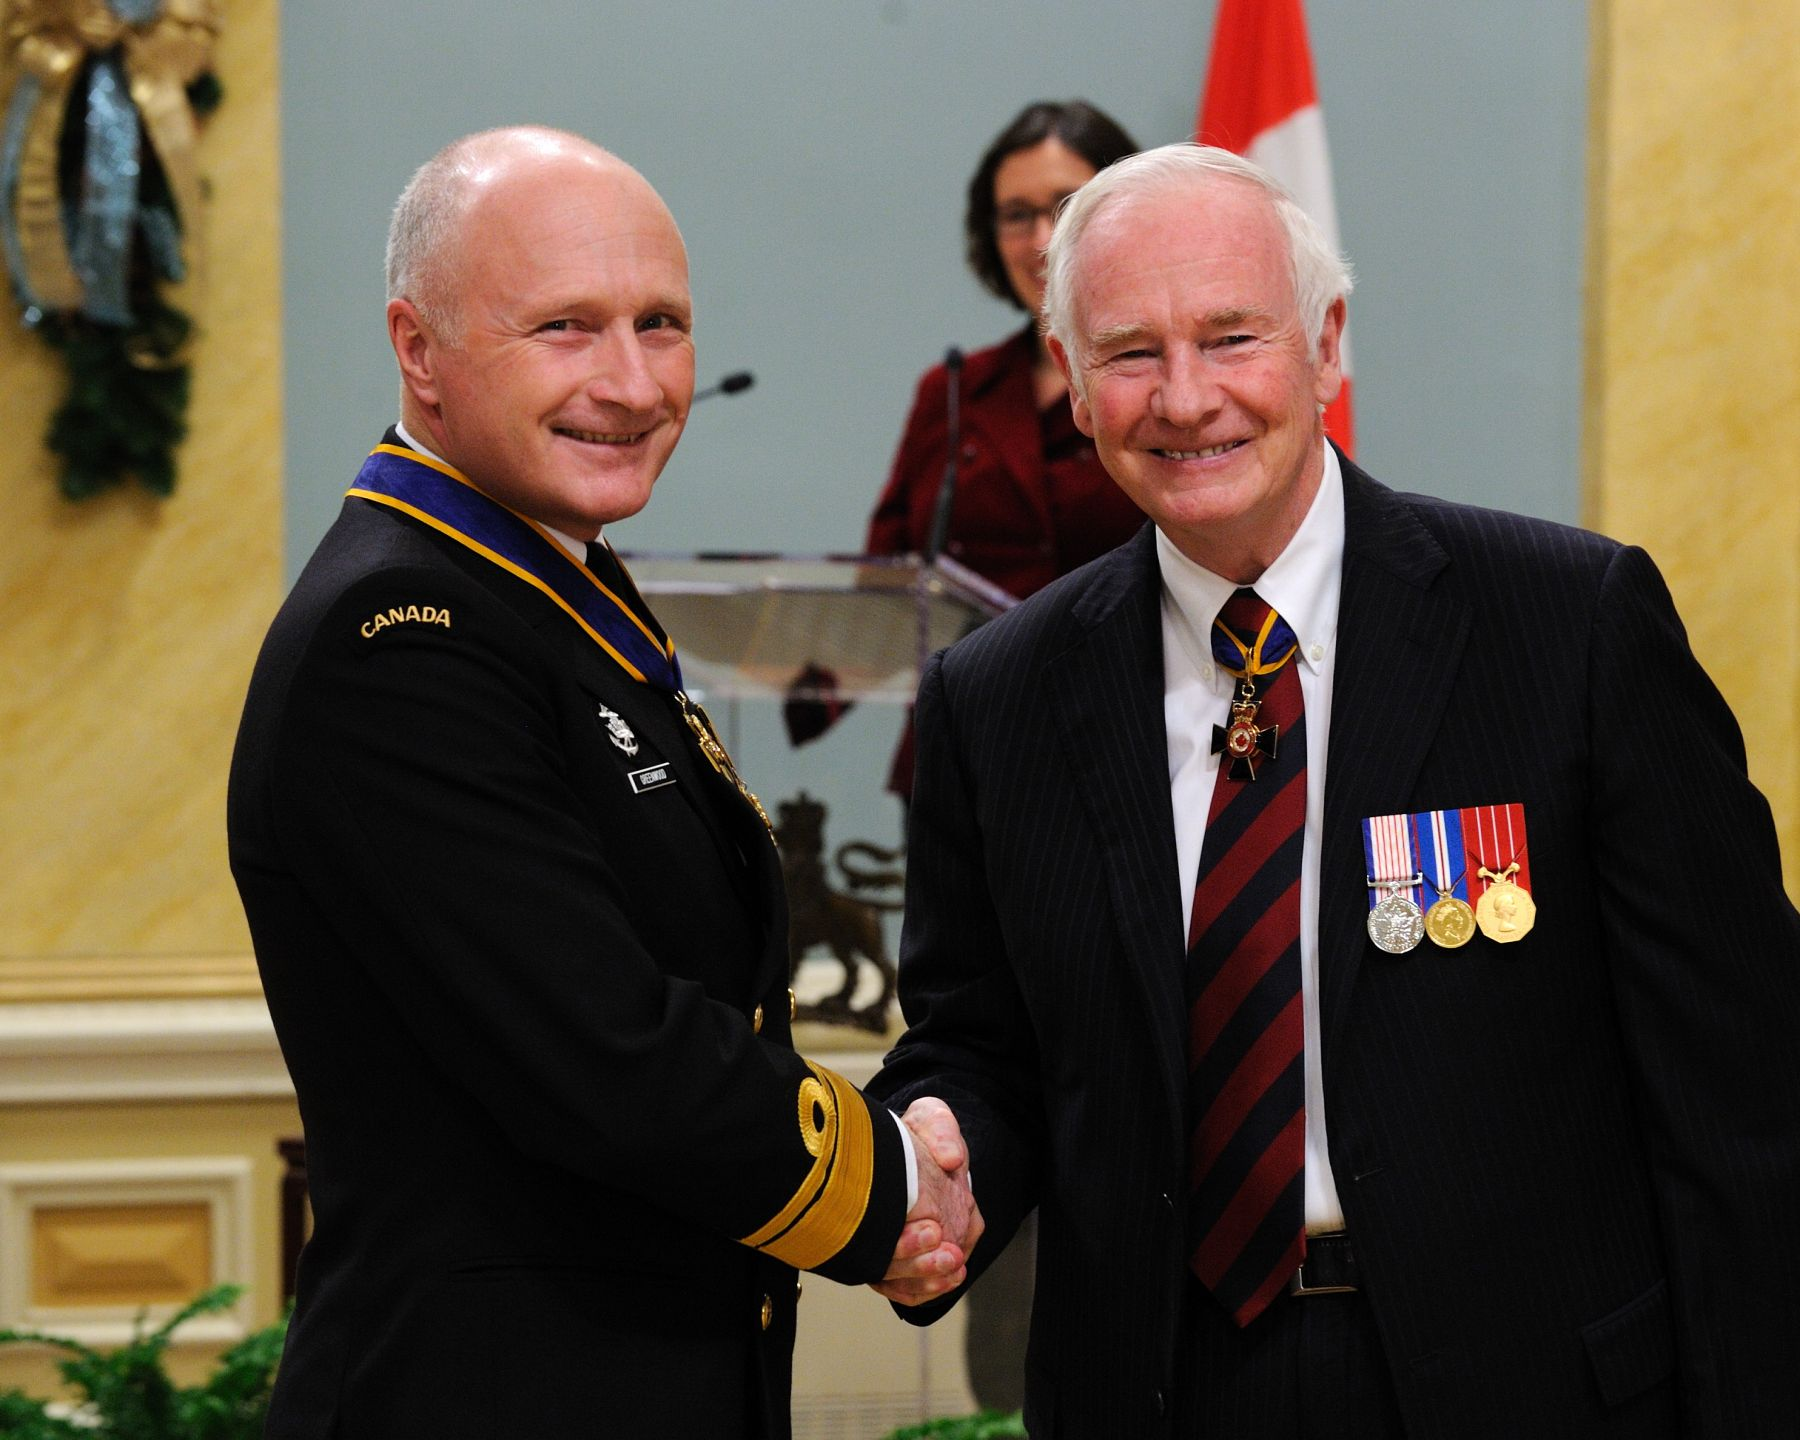 His Excellency presented the Order of Military Merit at the Commander level (C.M.M.) to Rear-Admiral Nigel Stafford Greenwood, C.M.M., C.D., Joint Task Force Pacific Headquarters, Victoria, British Columbia. This is a promotion within the Order.